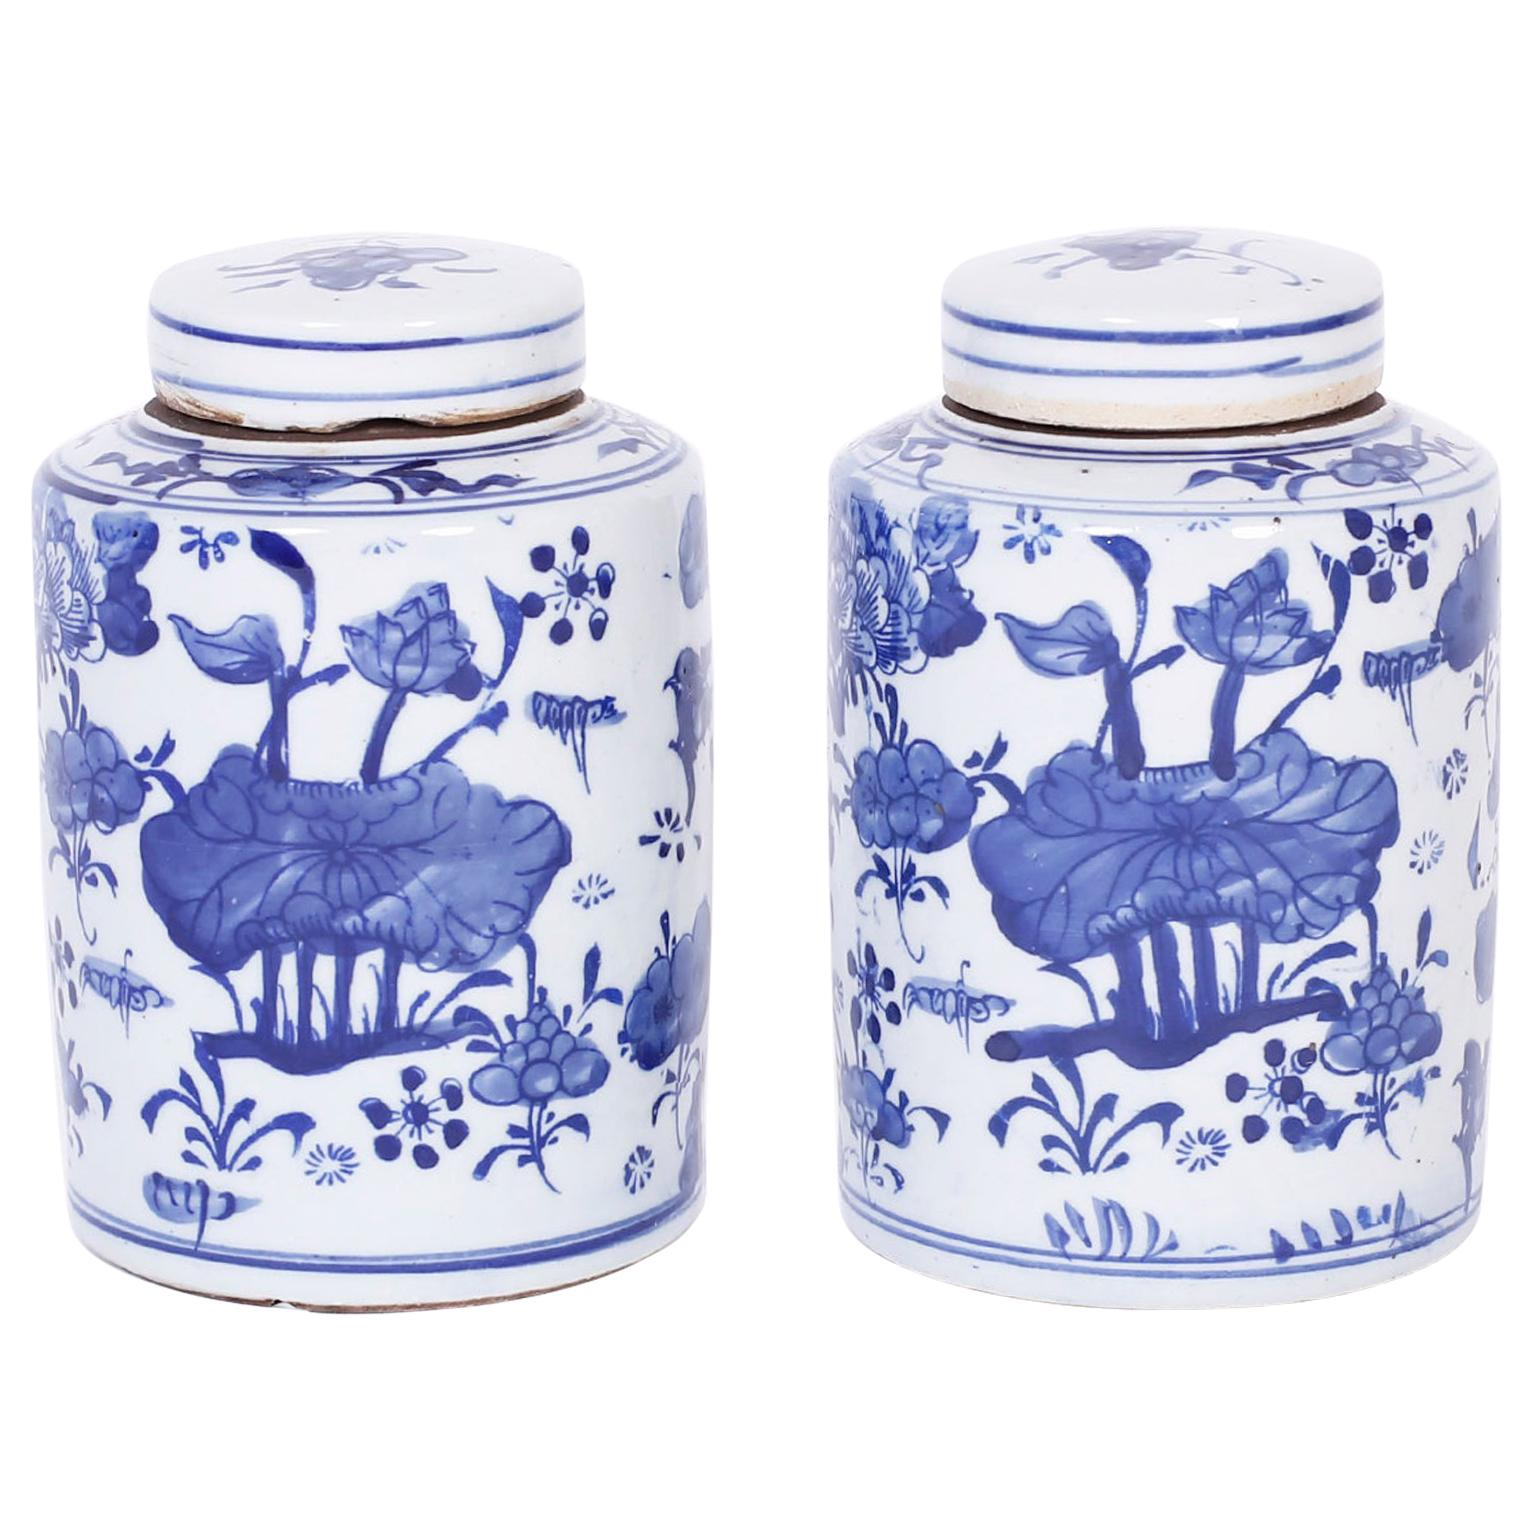 Pair of Blue and White Porcelain Tea Jars